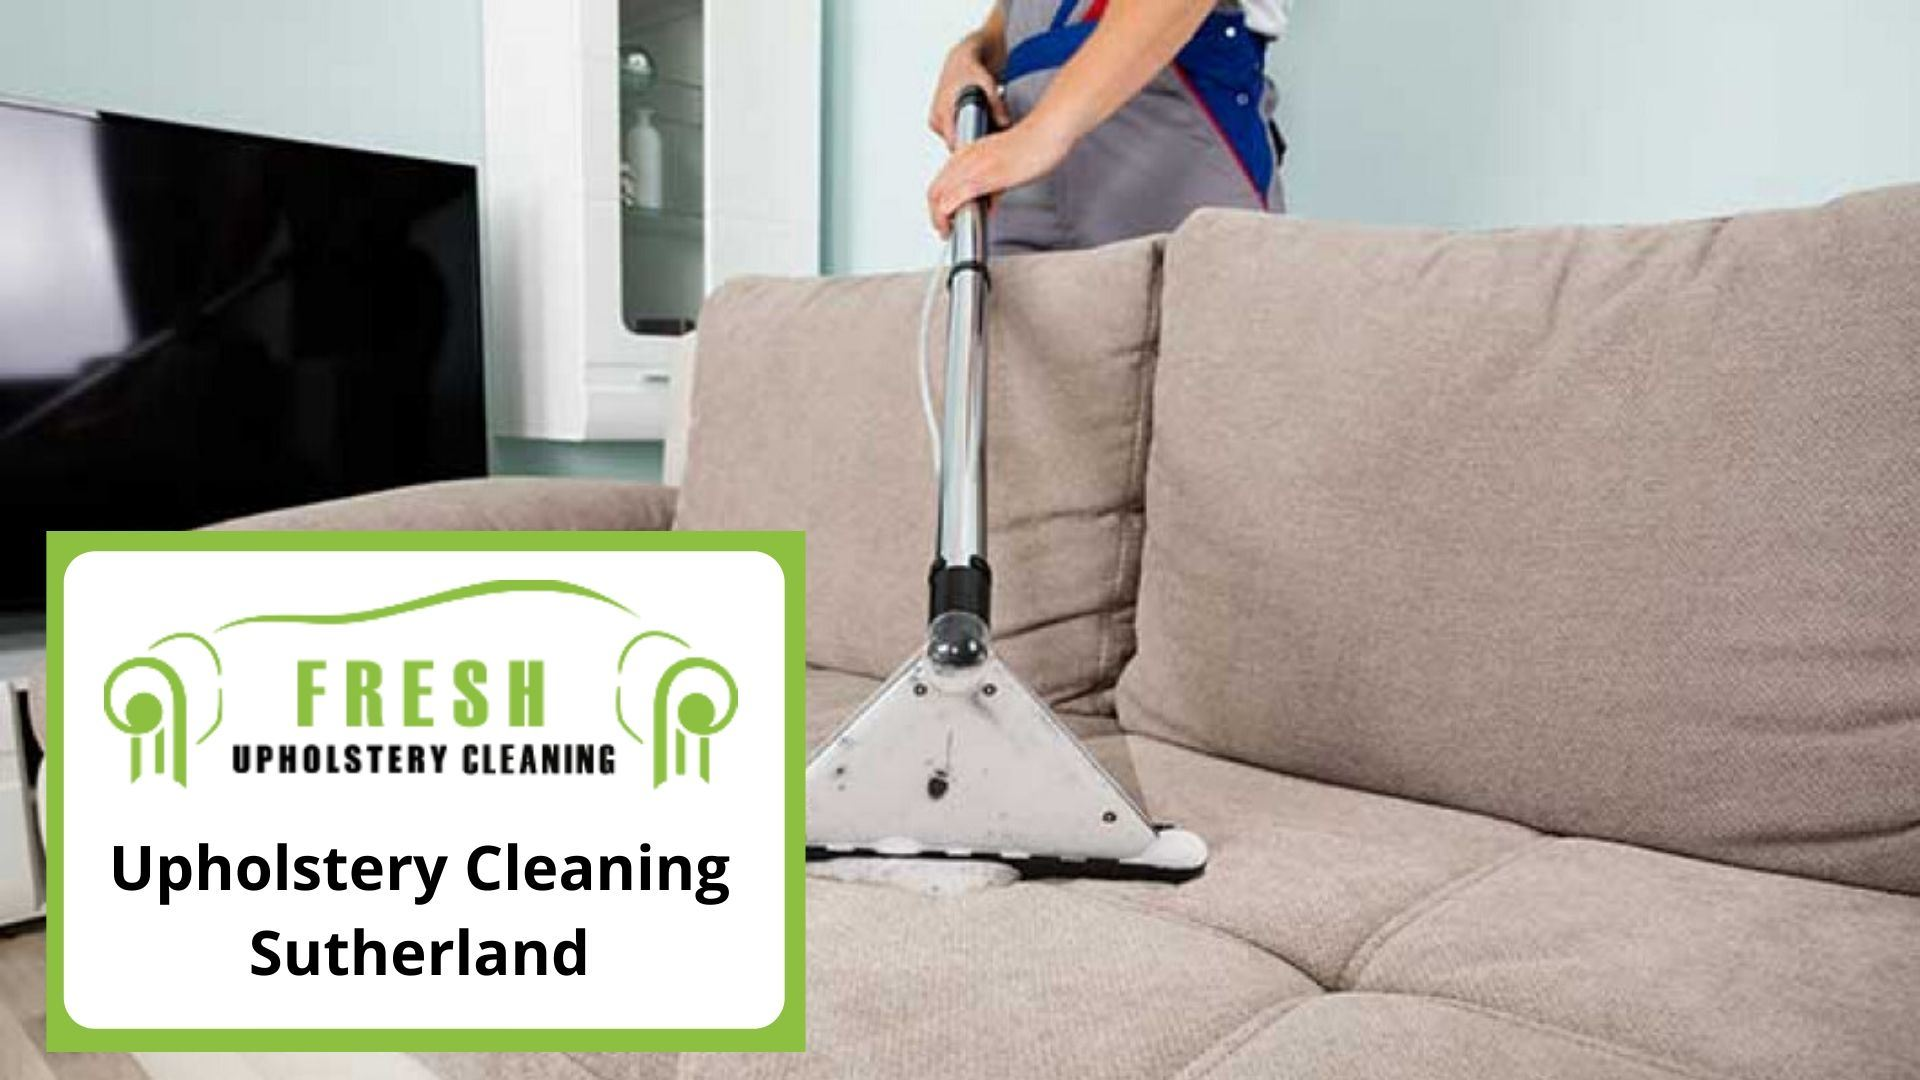 Upholstery Cleaning Sutherland (1)